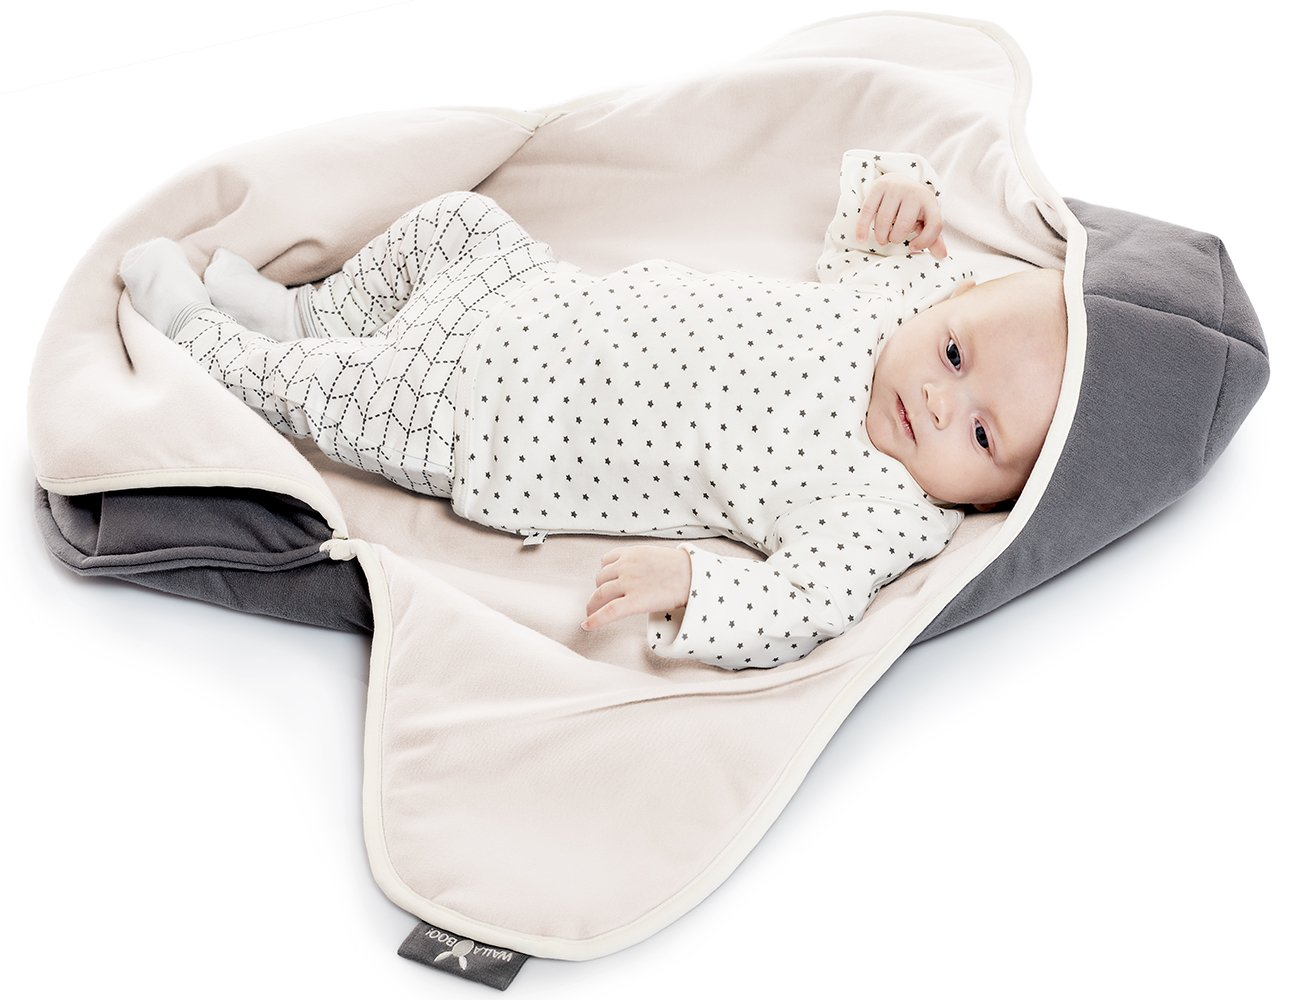 Blue//White Wallaboo Baby Blanket Coco 0-10 Months Super Soft Hooded Receiving Blanket Easy For Travel and Home 100 Percent Pure Cotton